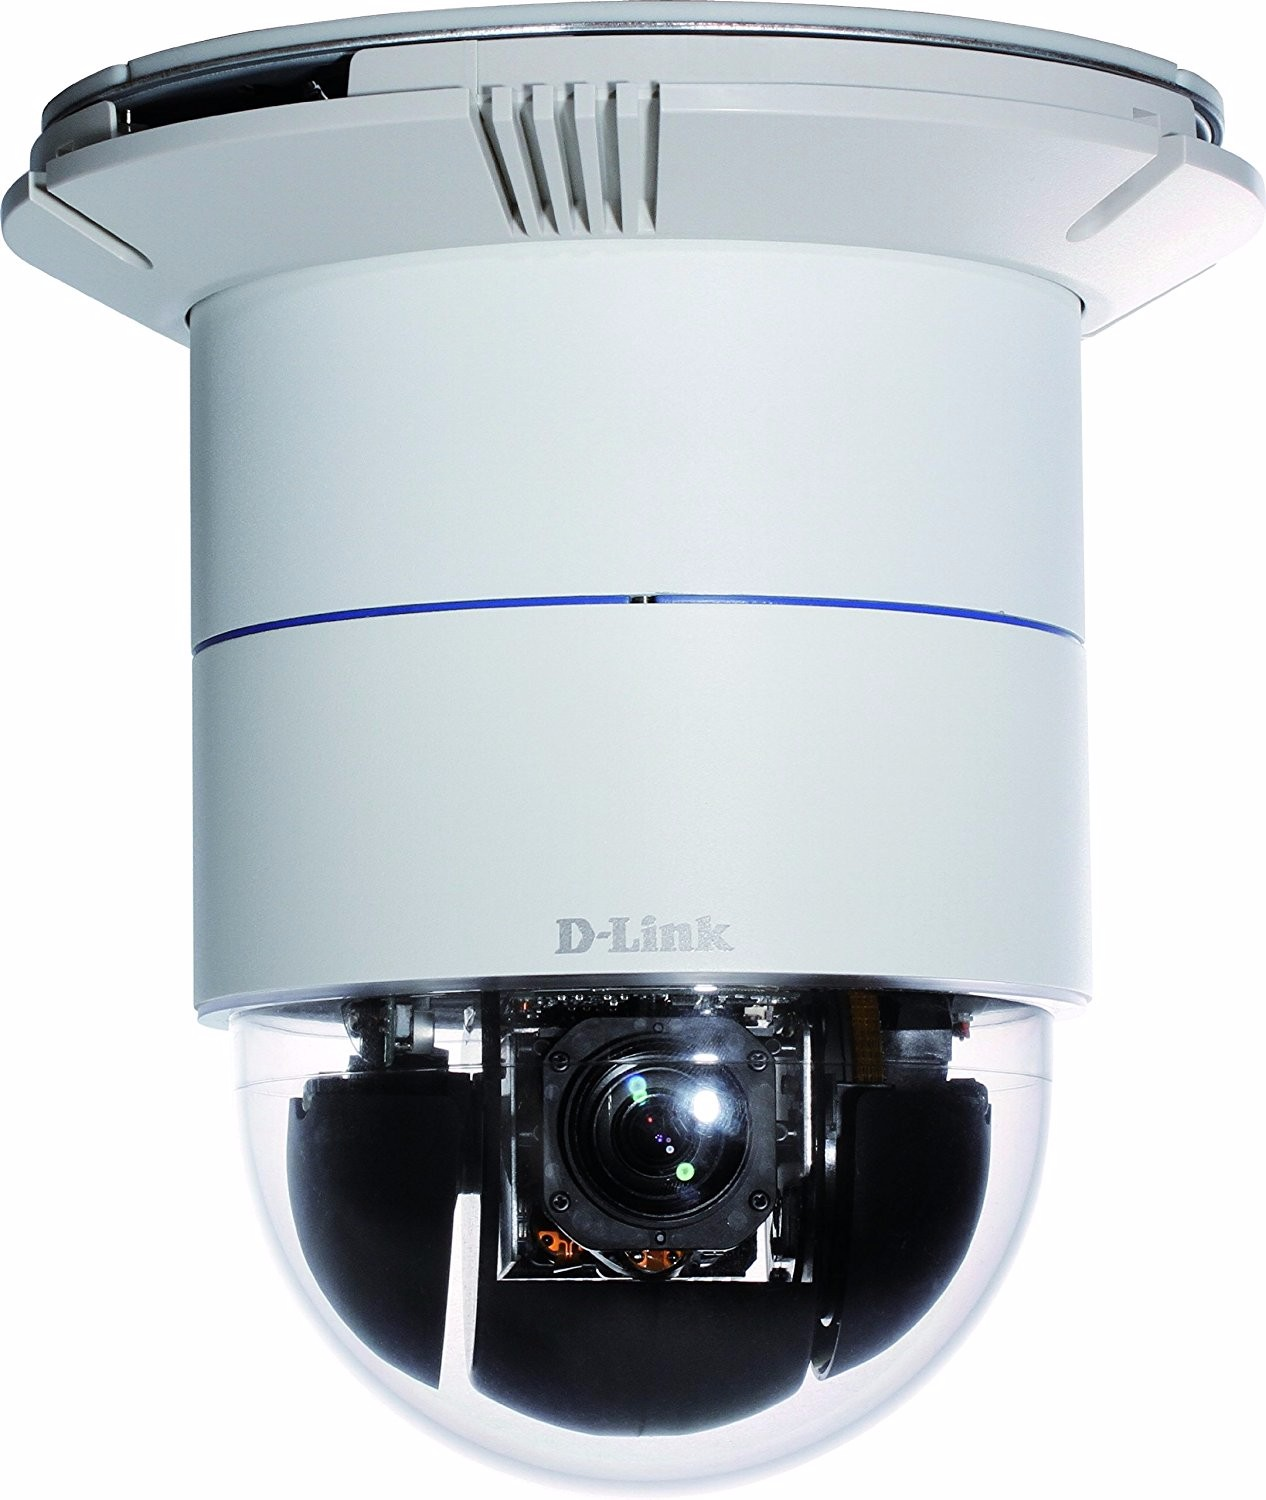 D-link Systems 12x Indoor Speed Dome Ip Camera Ccd 3.8-45.6 Mm 12 X 12 X by D-Link